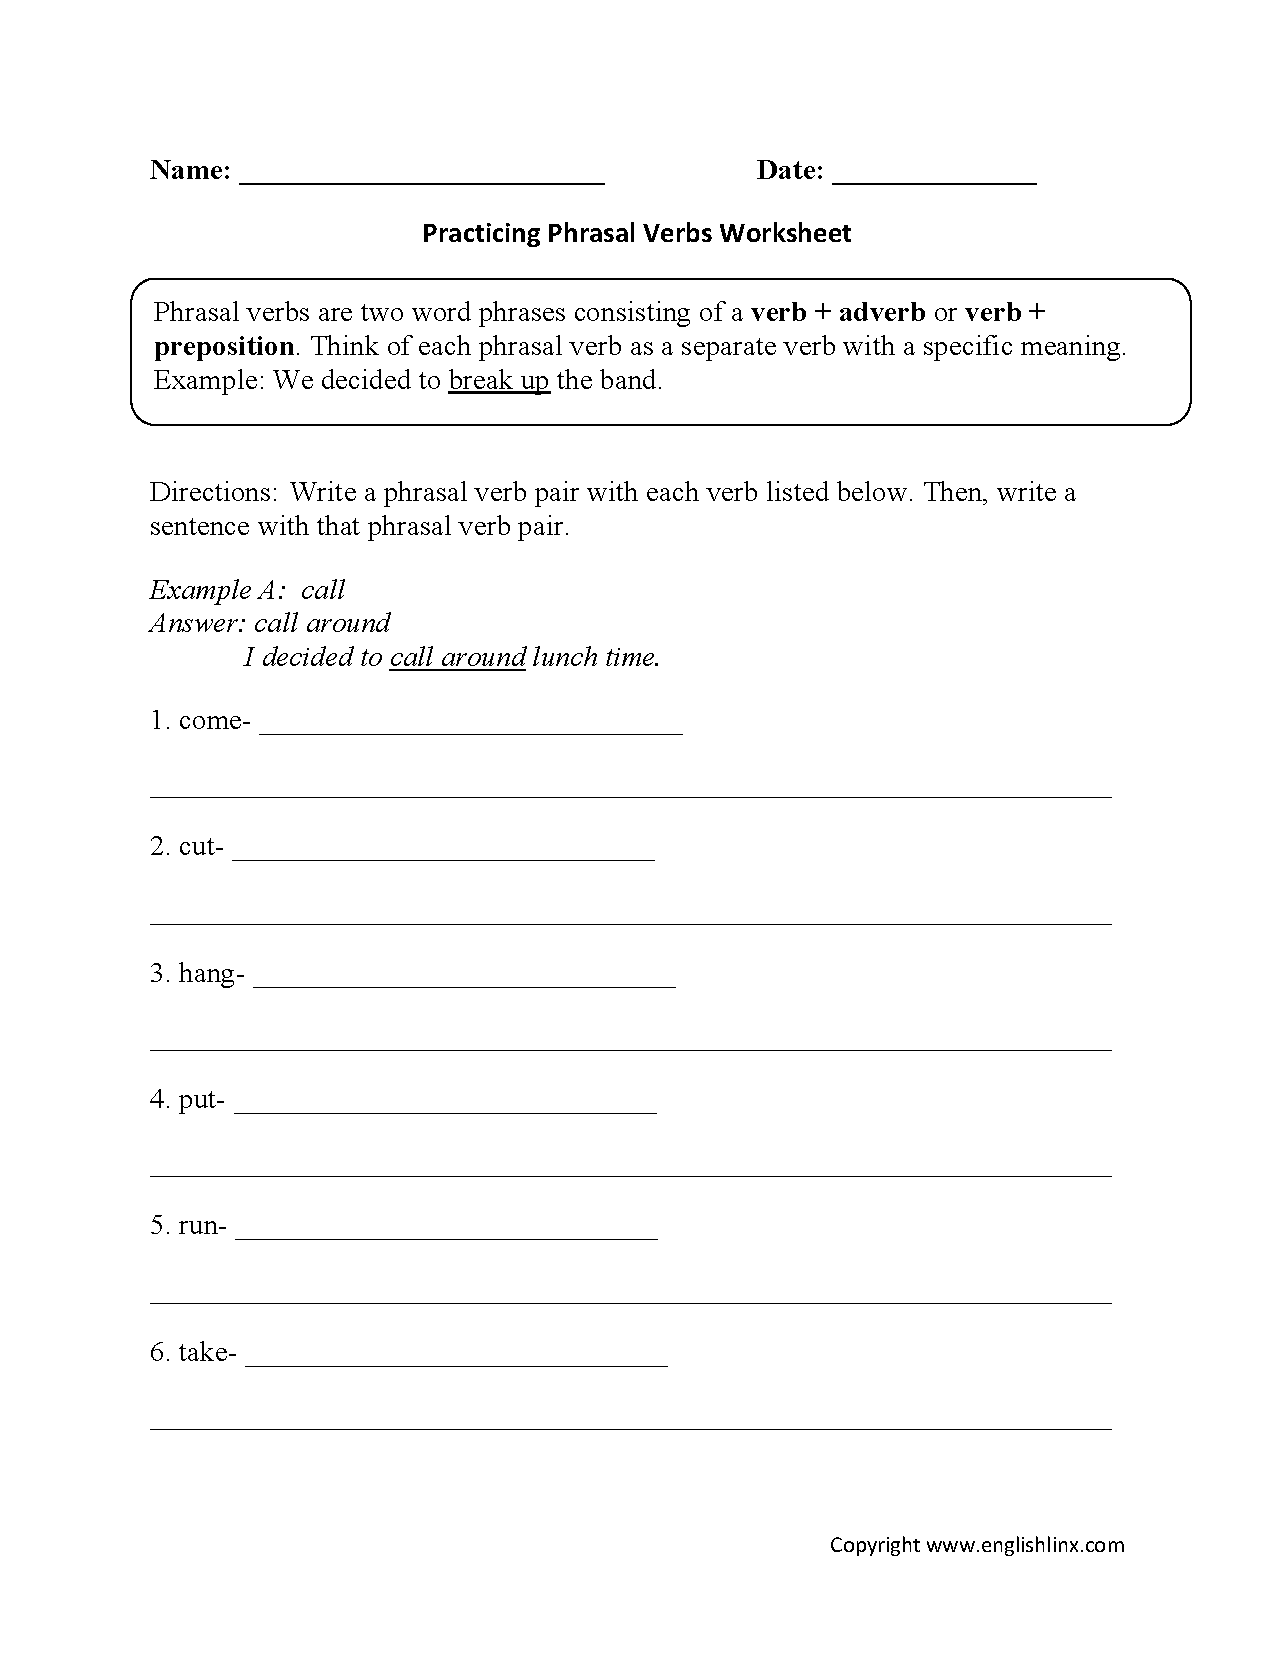 Worksheet On Phrasal Verbs For Grade 4